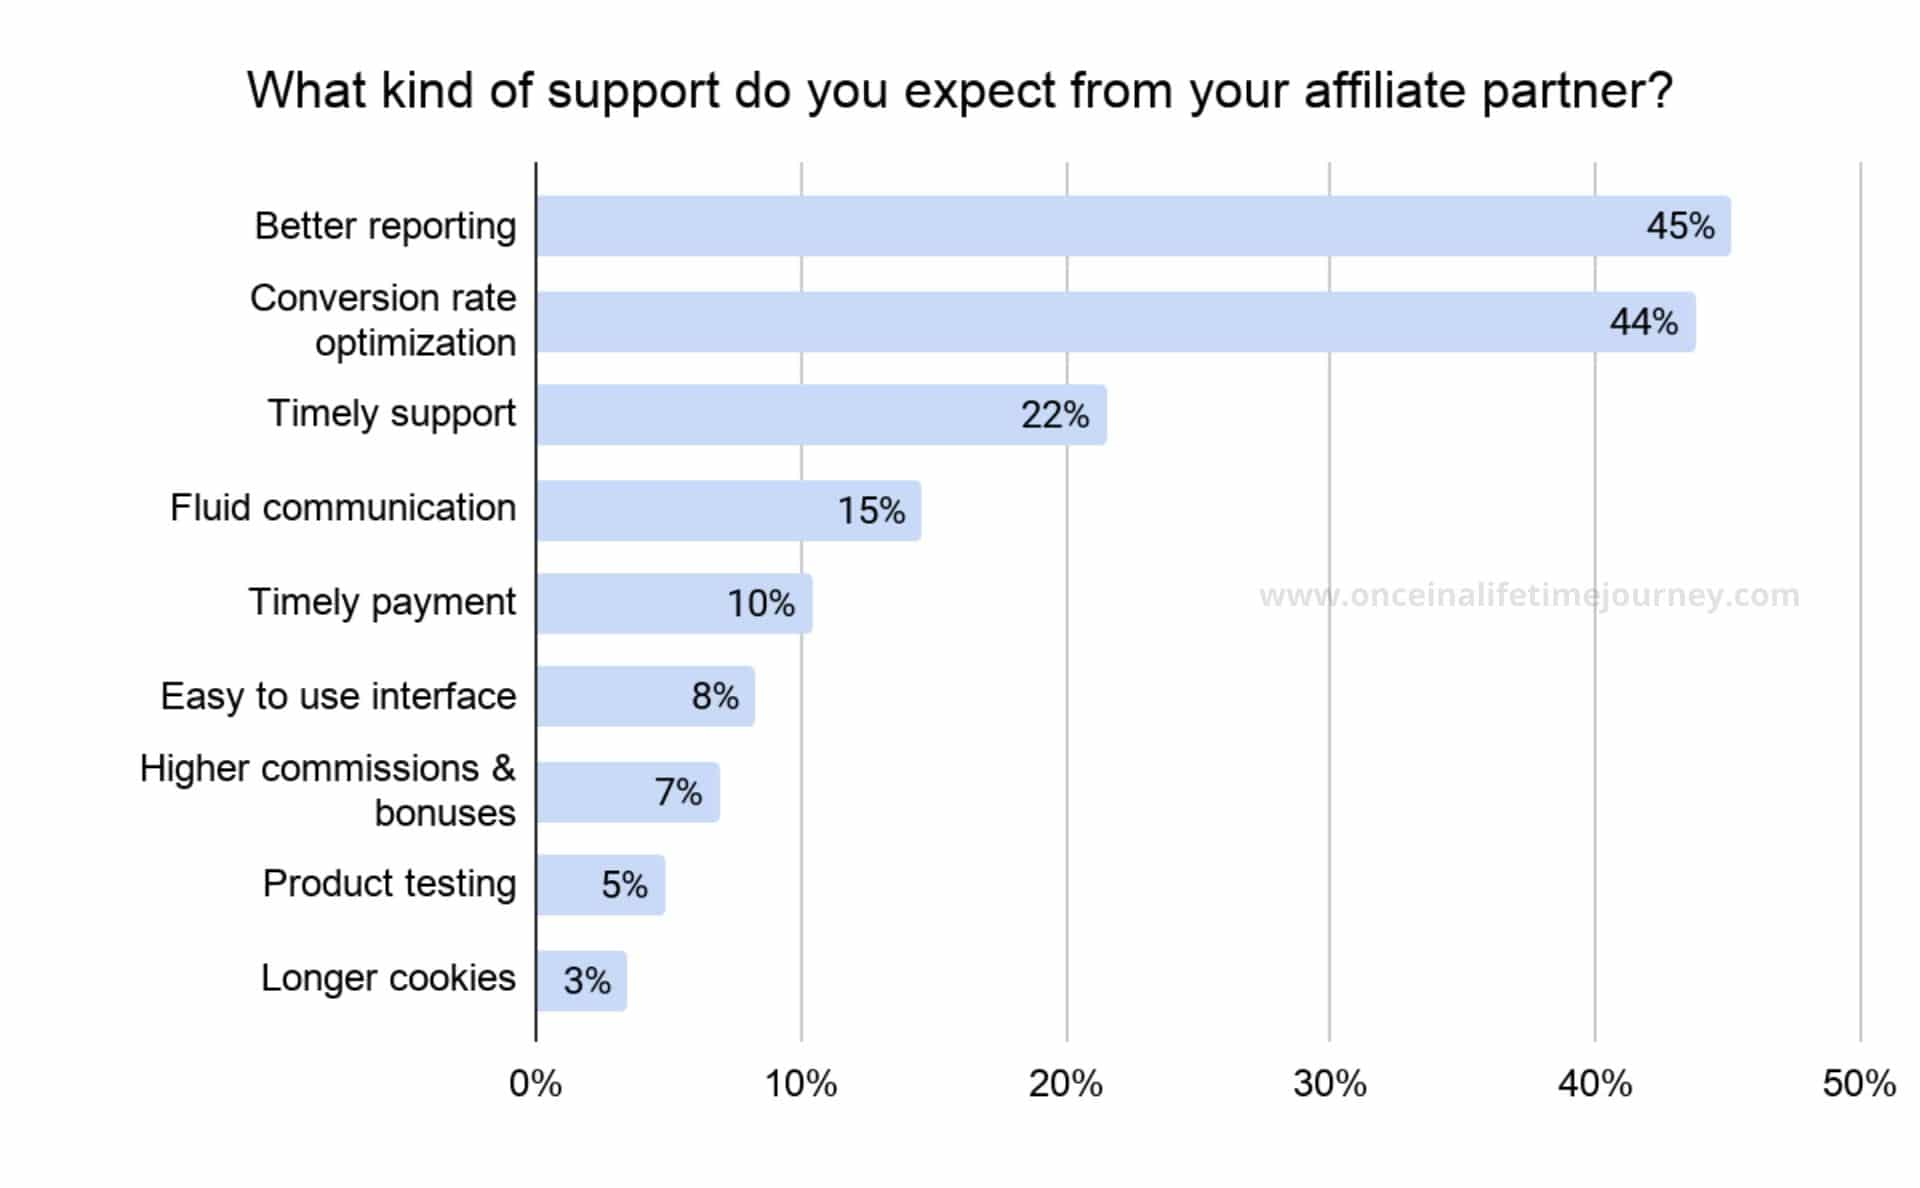 Support Content Creators expect from affiliate partners